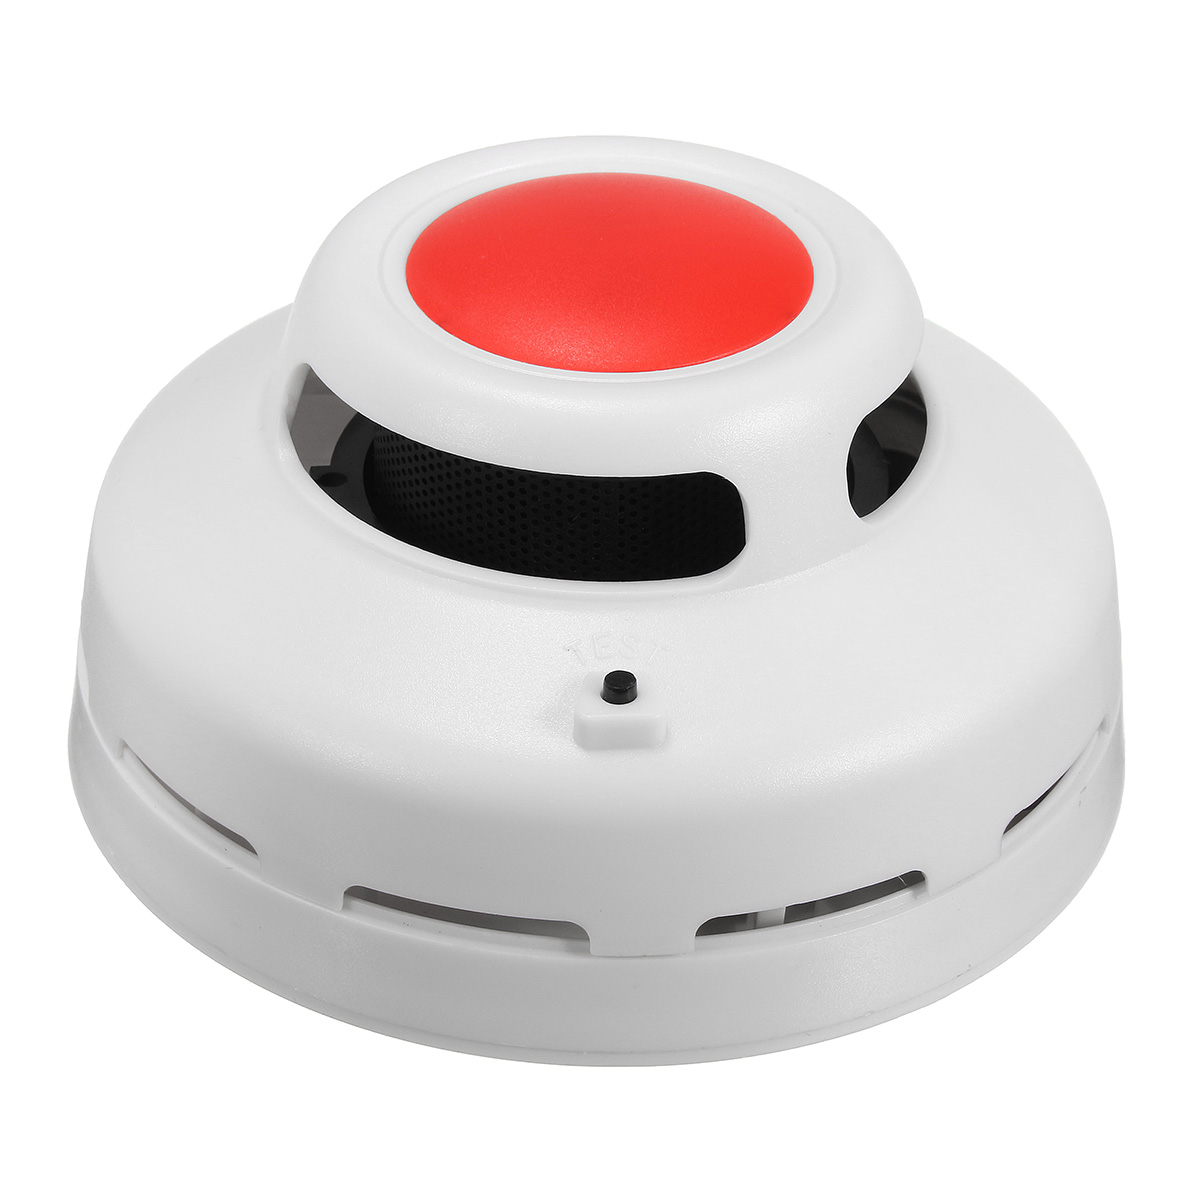 2 in1 Combination Carbon Monoxide And Smoke Alarm CO & Smoke Detector Home Security Warning Alarm цена